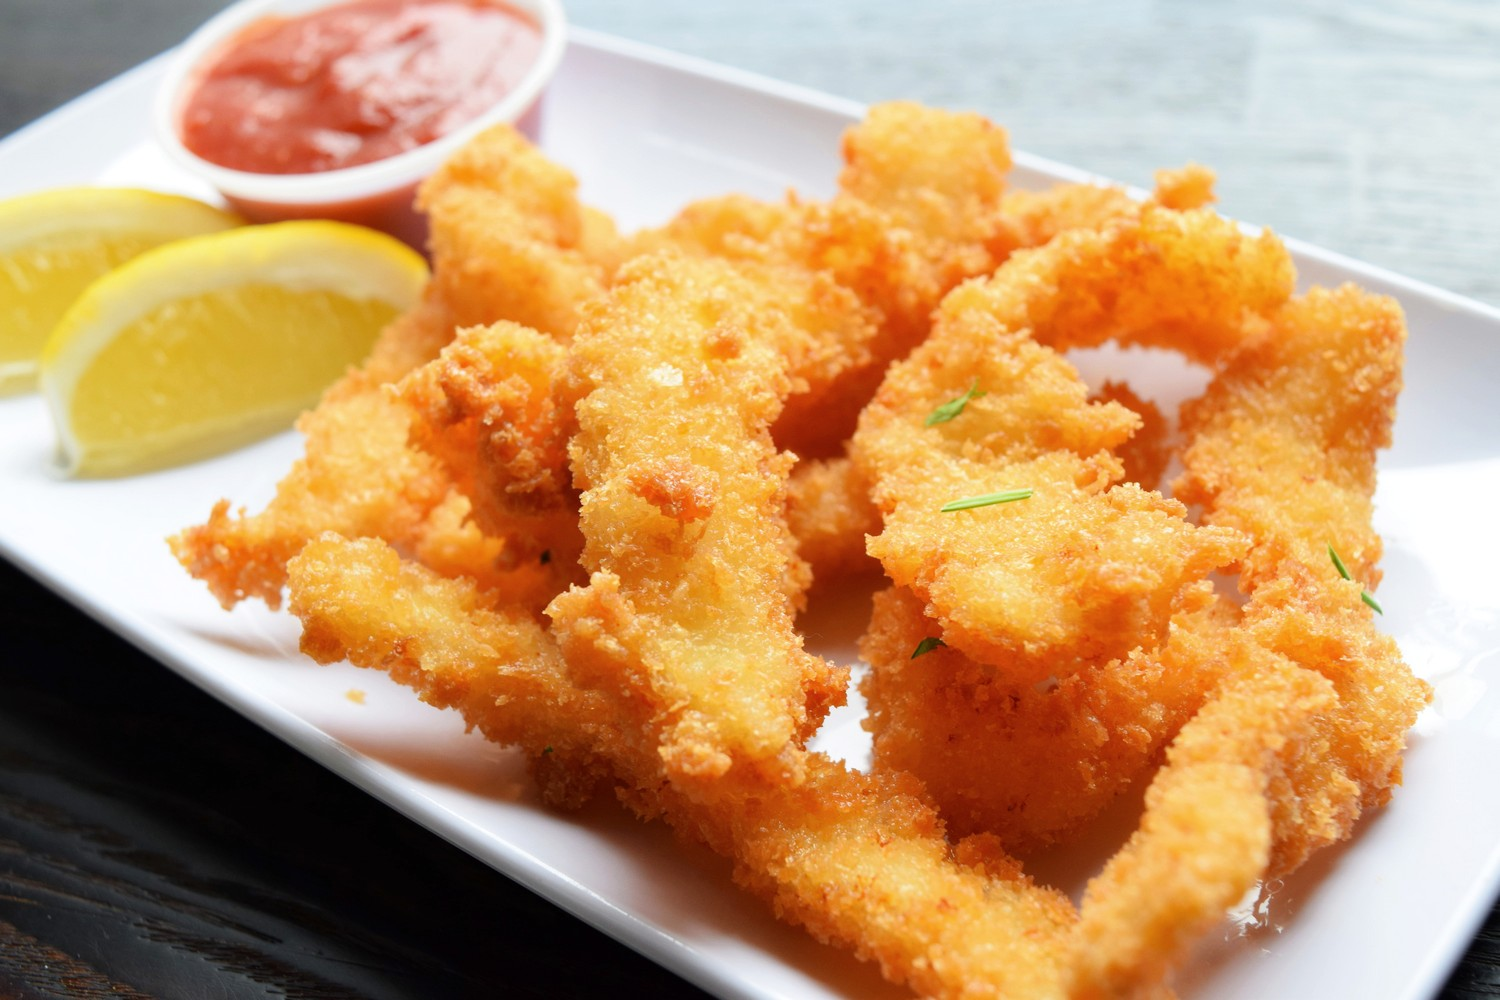 fried fish sticks with a side of dipping sauce